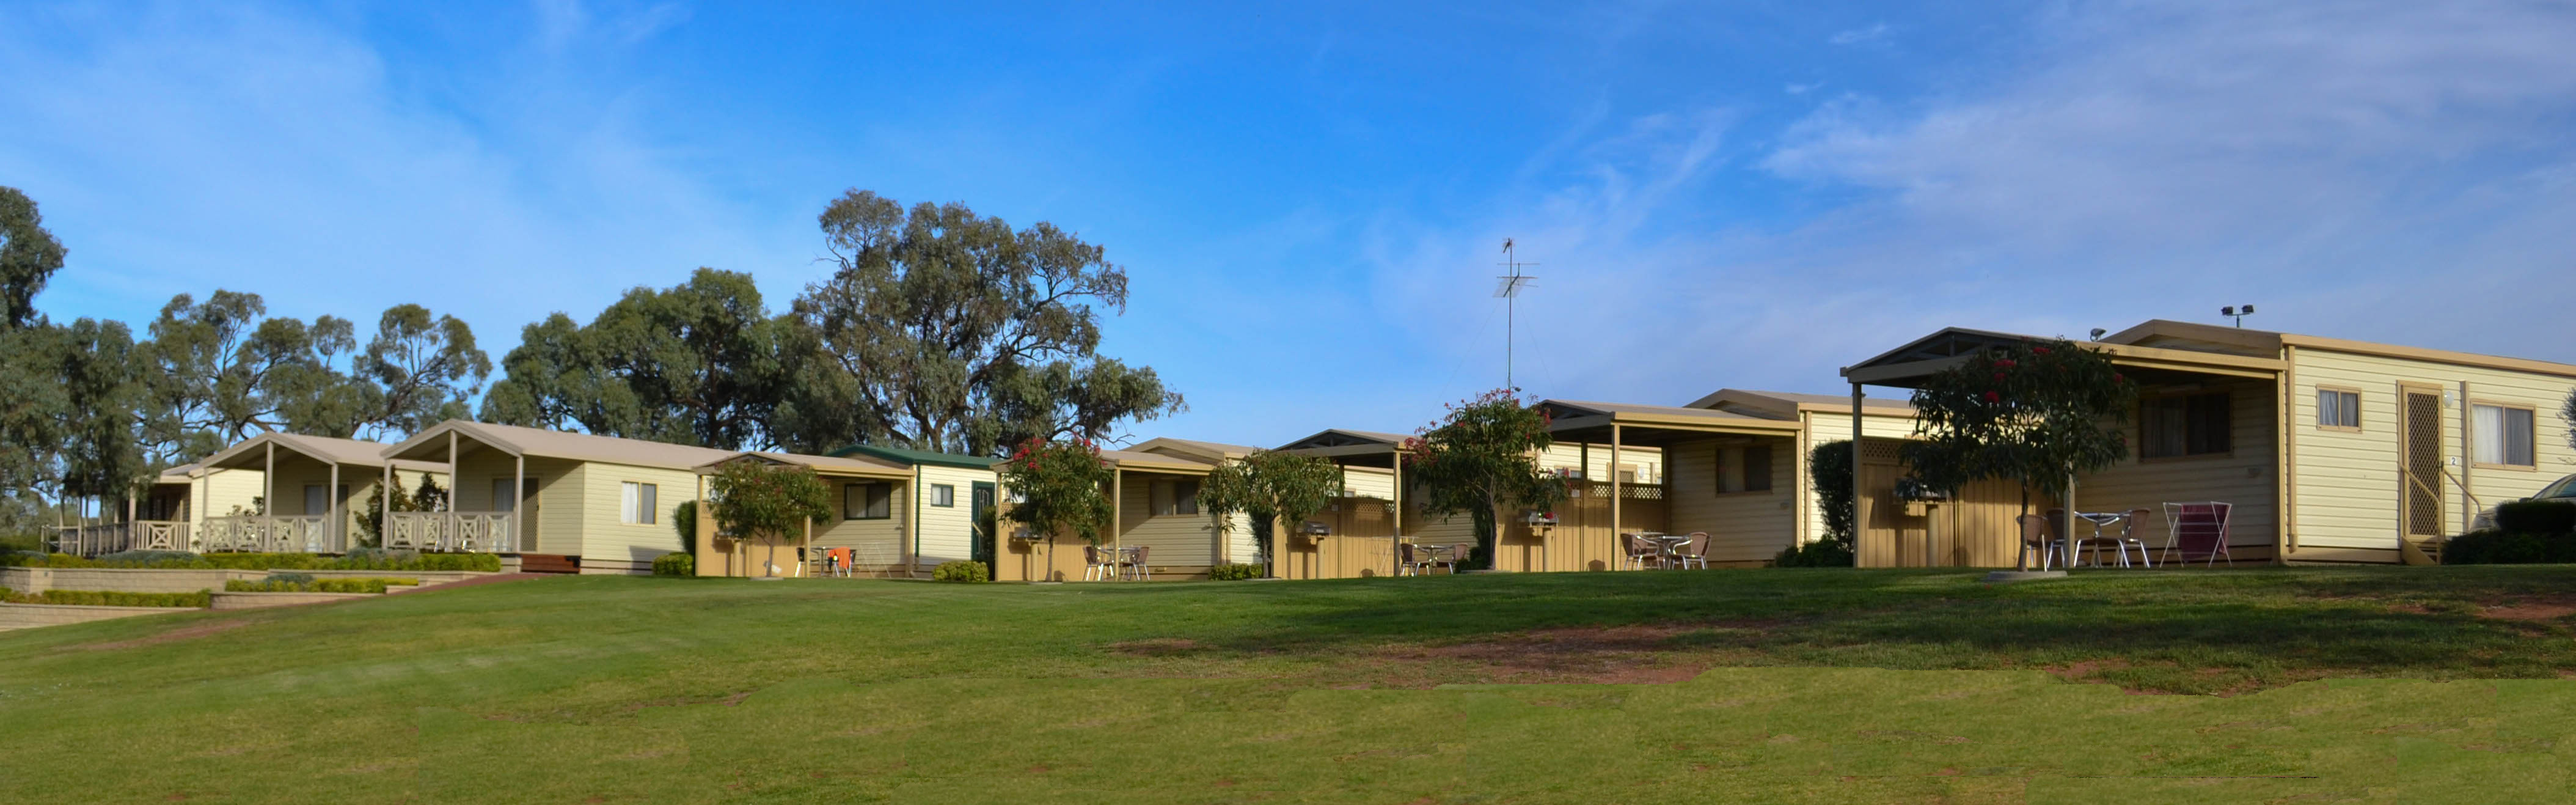 Euston Club Cabin Resort - Accommodation Mermaid Beach